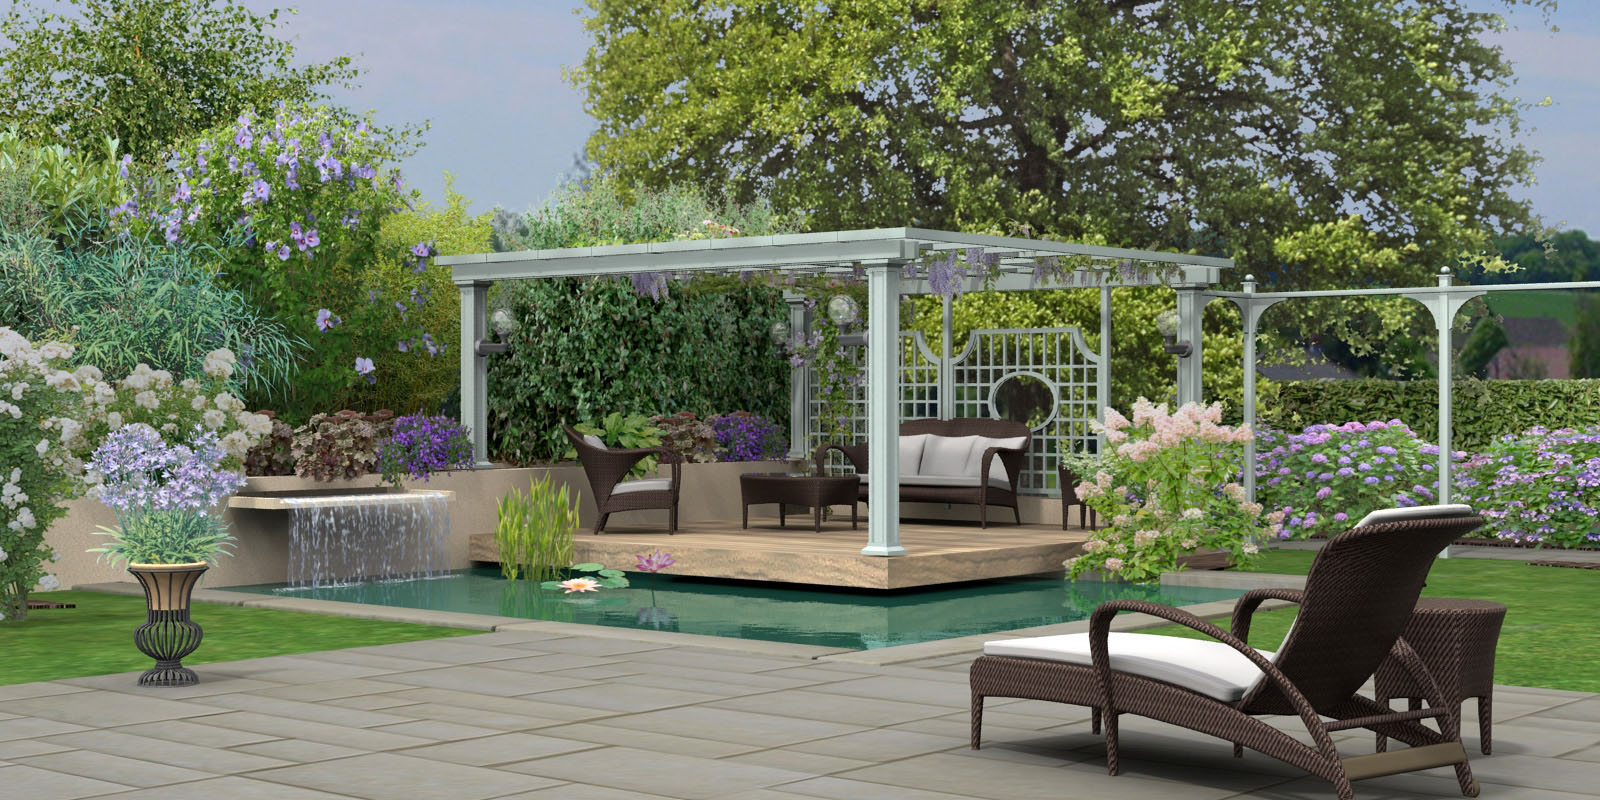 Hortus3d cr ation de plans de jardin 3d en r alit virtuelle for Amenager son jardin 3d gratuit